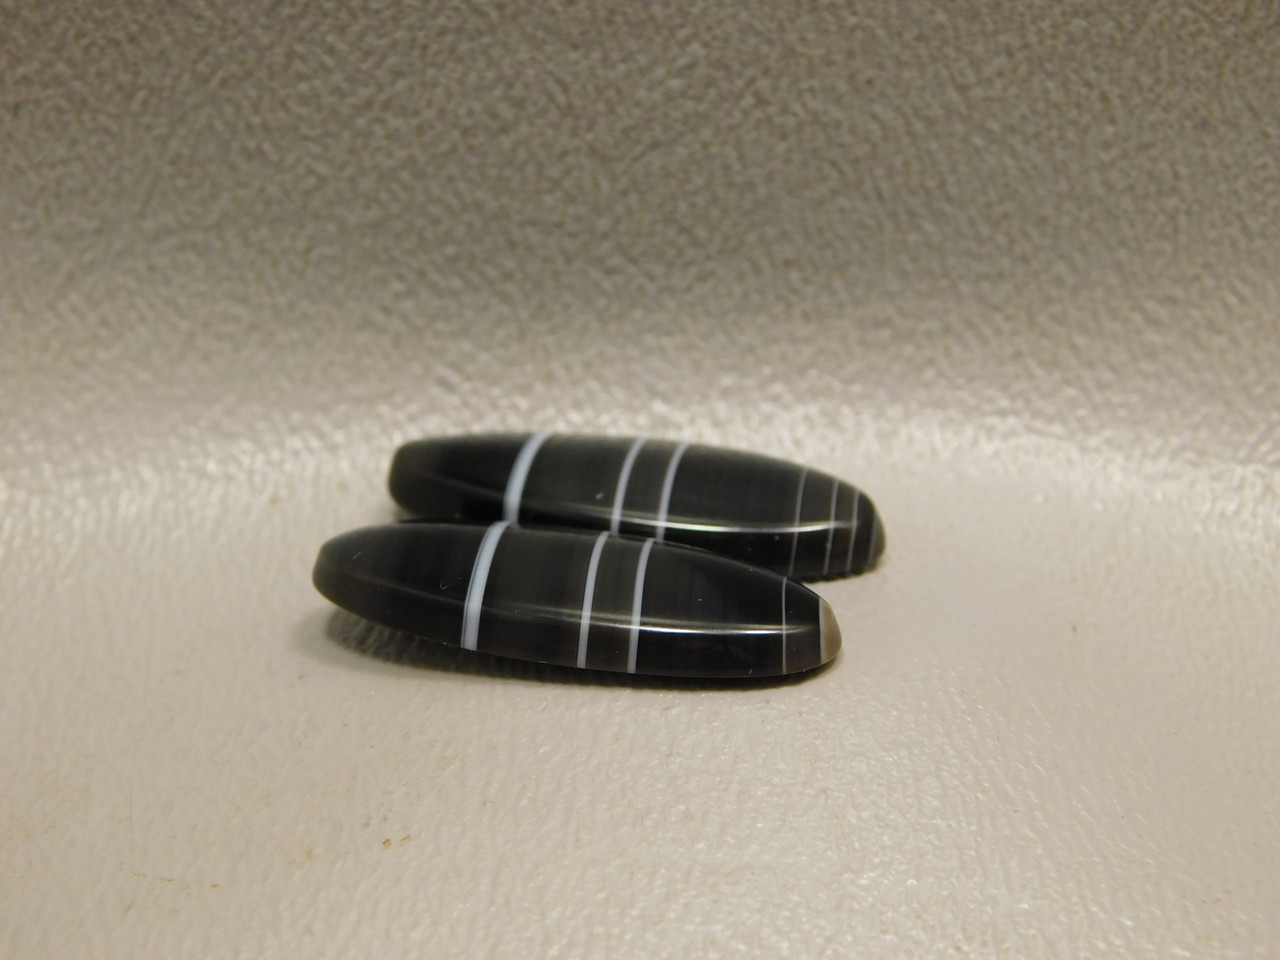 Tuxedo Agate Black White Striped Matched Pair Stone Cabochons #17